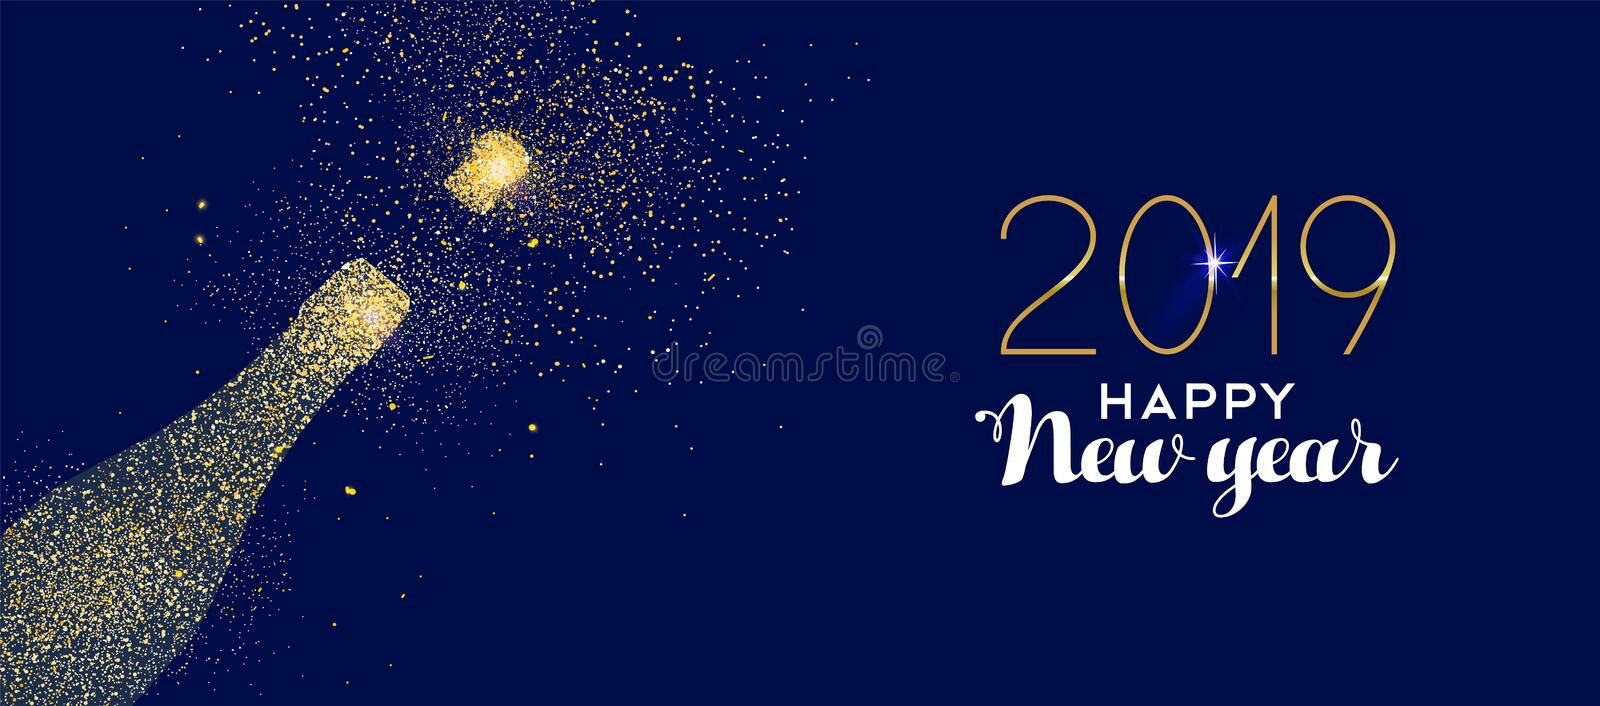 Happy New Year 2019 gold glitter champagne bottle. Happy new year 2019 gold champagne bottle celebration made of realistic golden glitter dust. Ideal for holiday royalty free illustration